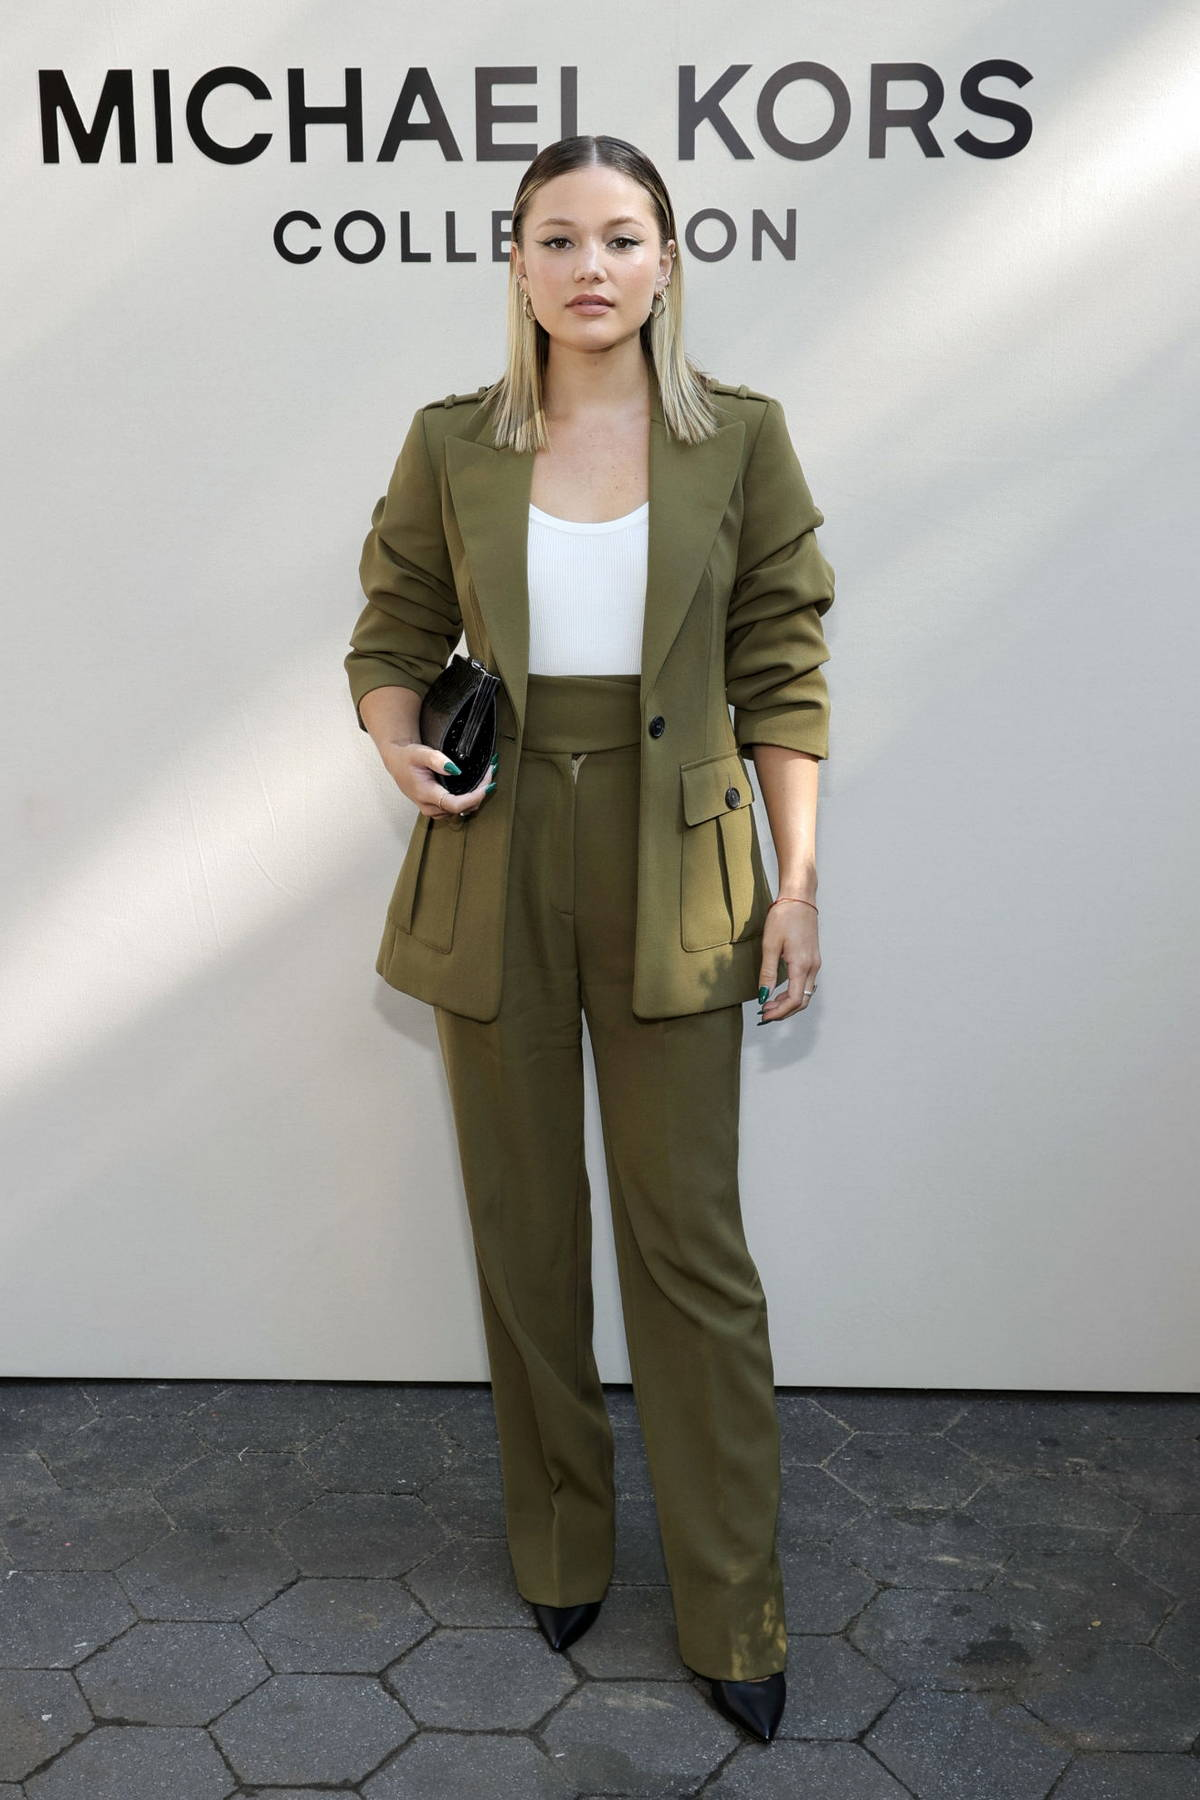 Olivia Holt attends the Michael Kors SP22 fashion show during New York Fashion Week in New York City